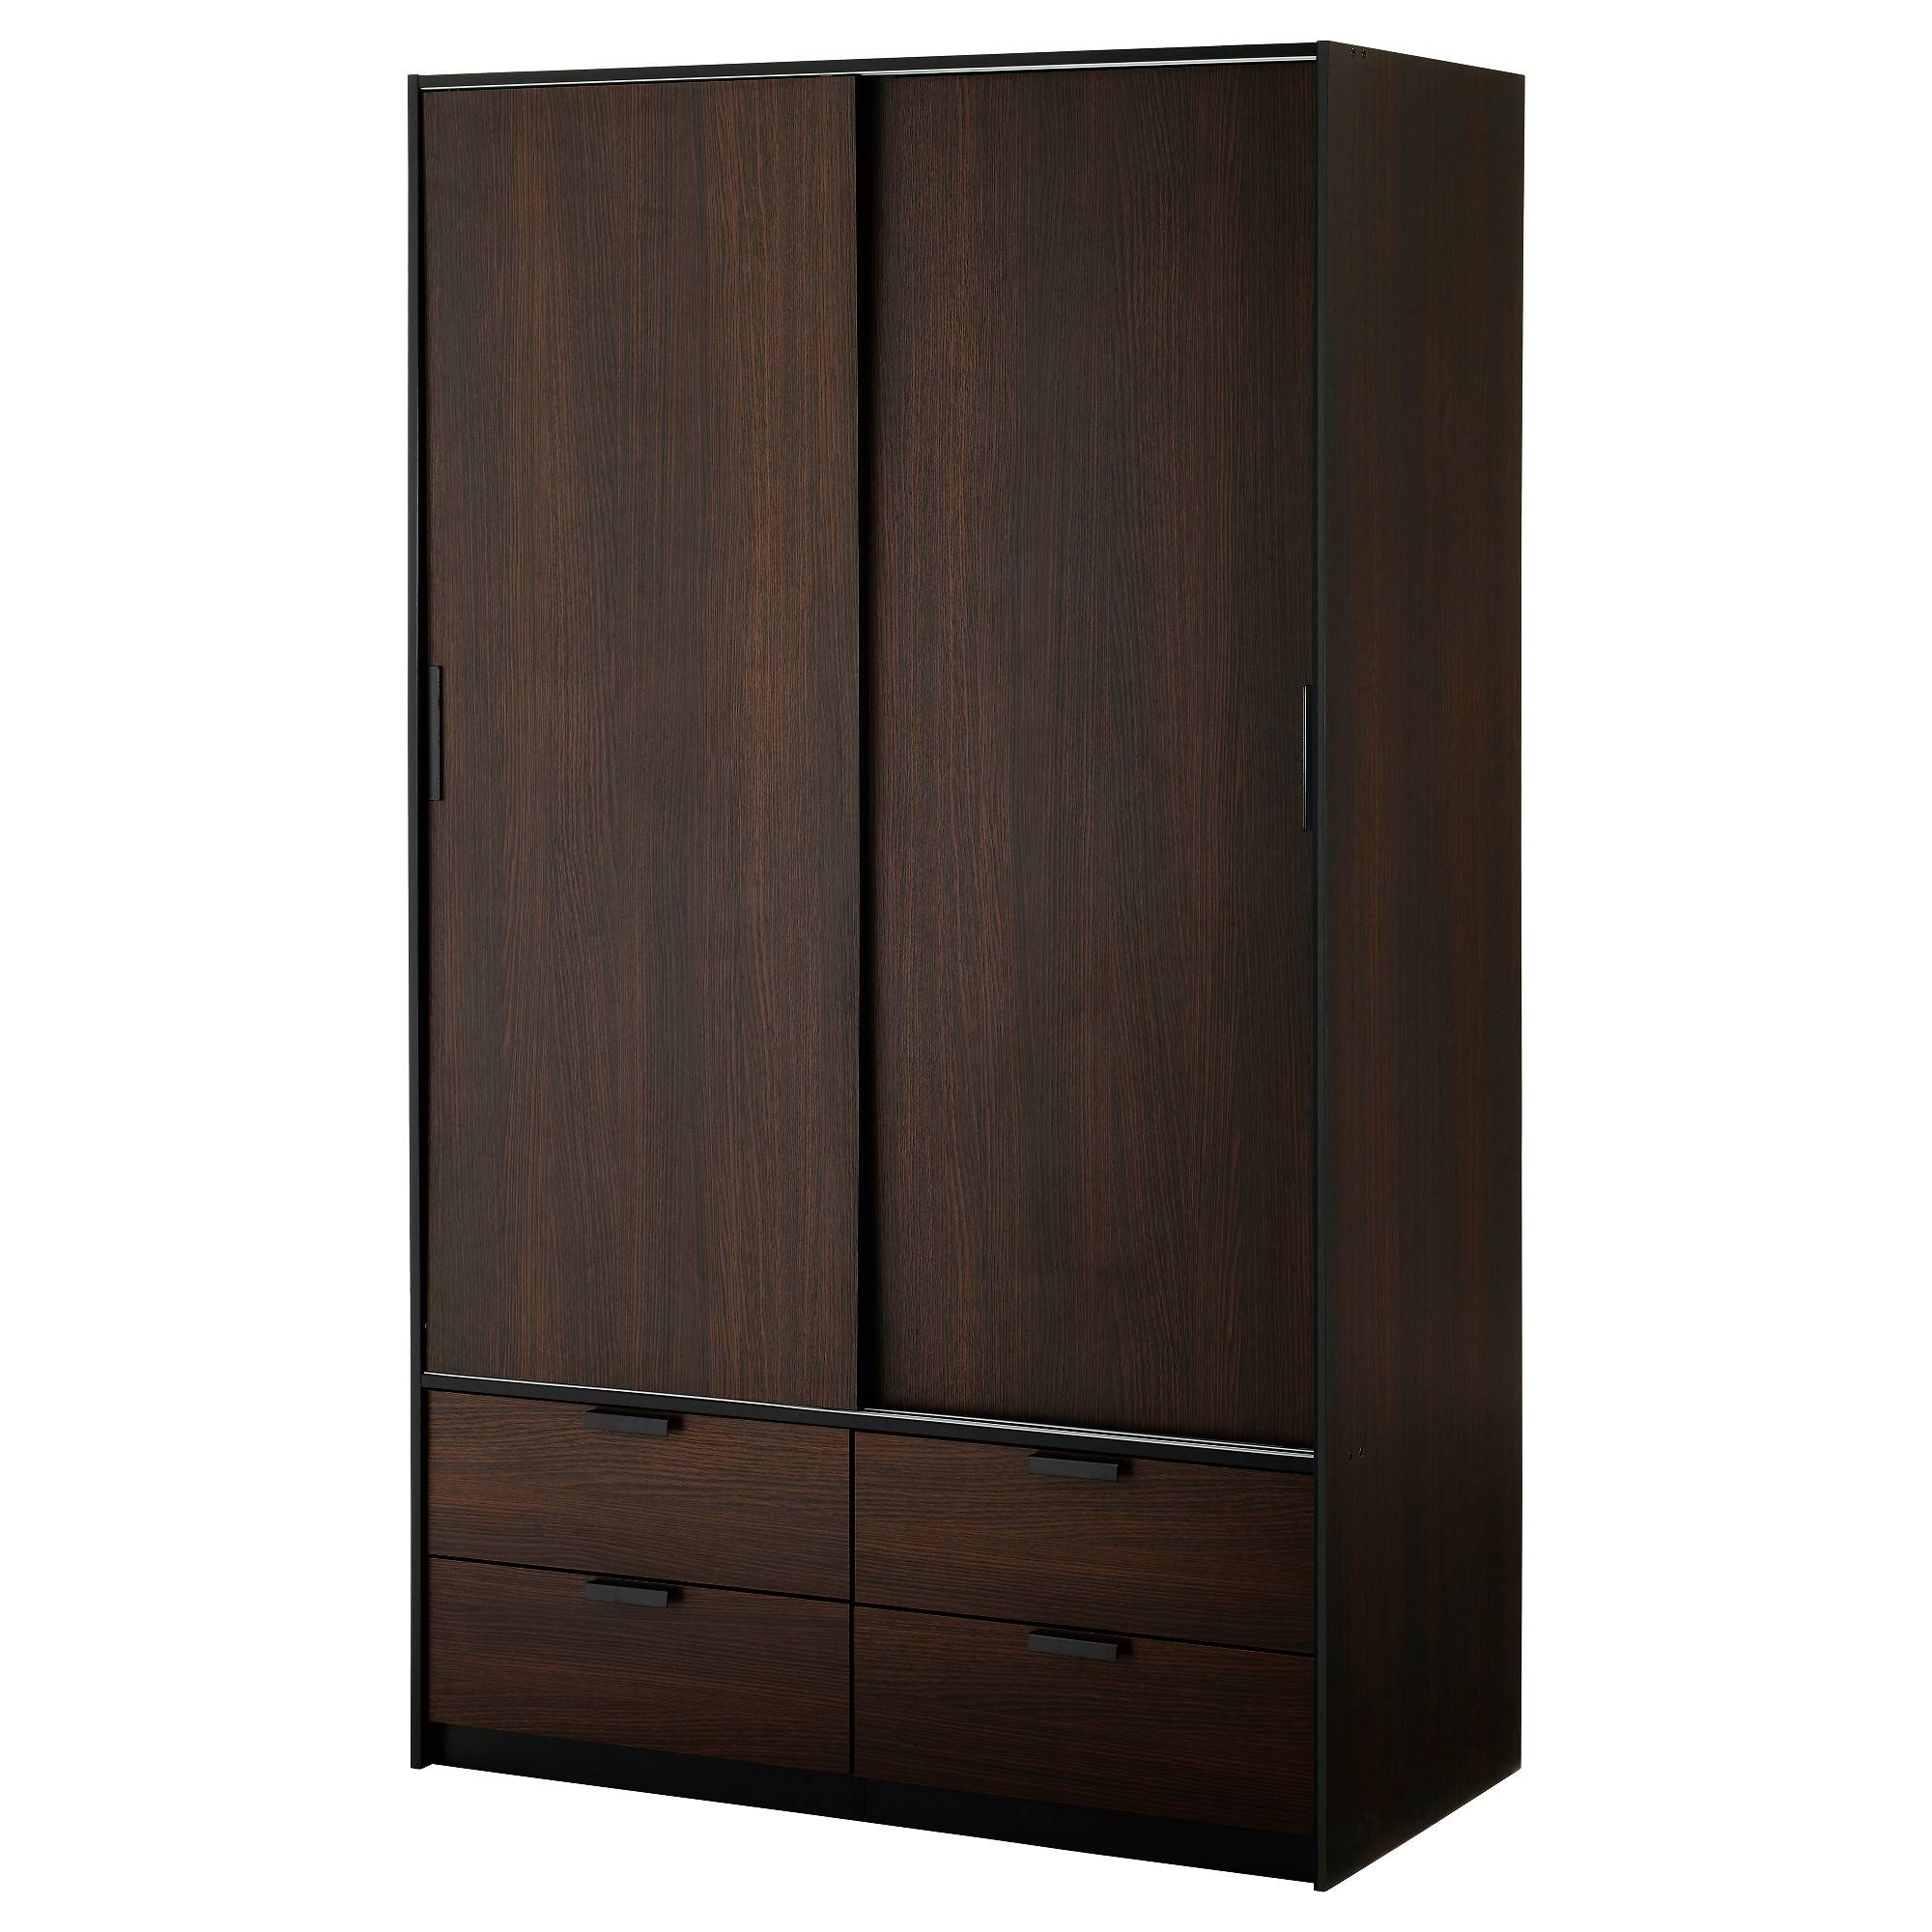 Trysil Wardrobe W Sliding Doors/4 Drawers - Ikea pertaining to Dark Wood Wardrobe Sliding Doors (Image 27 of 30)